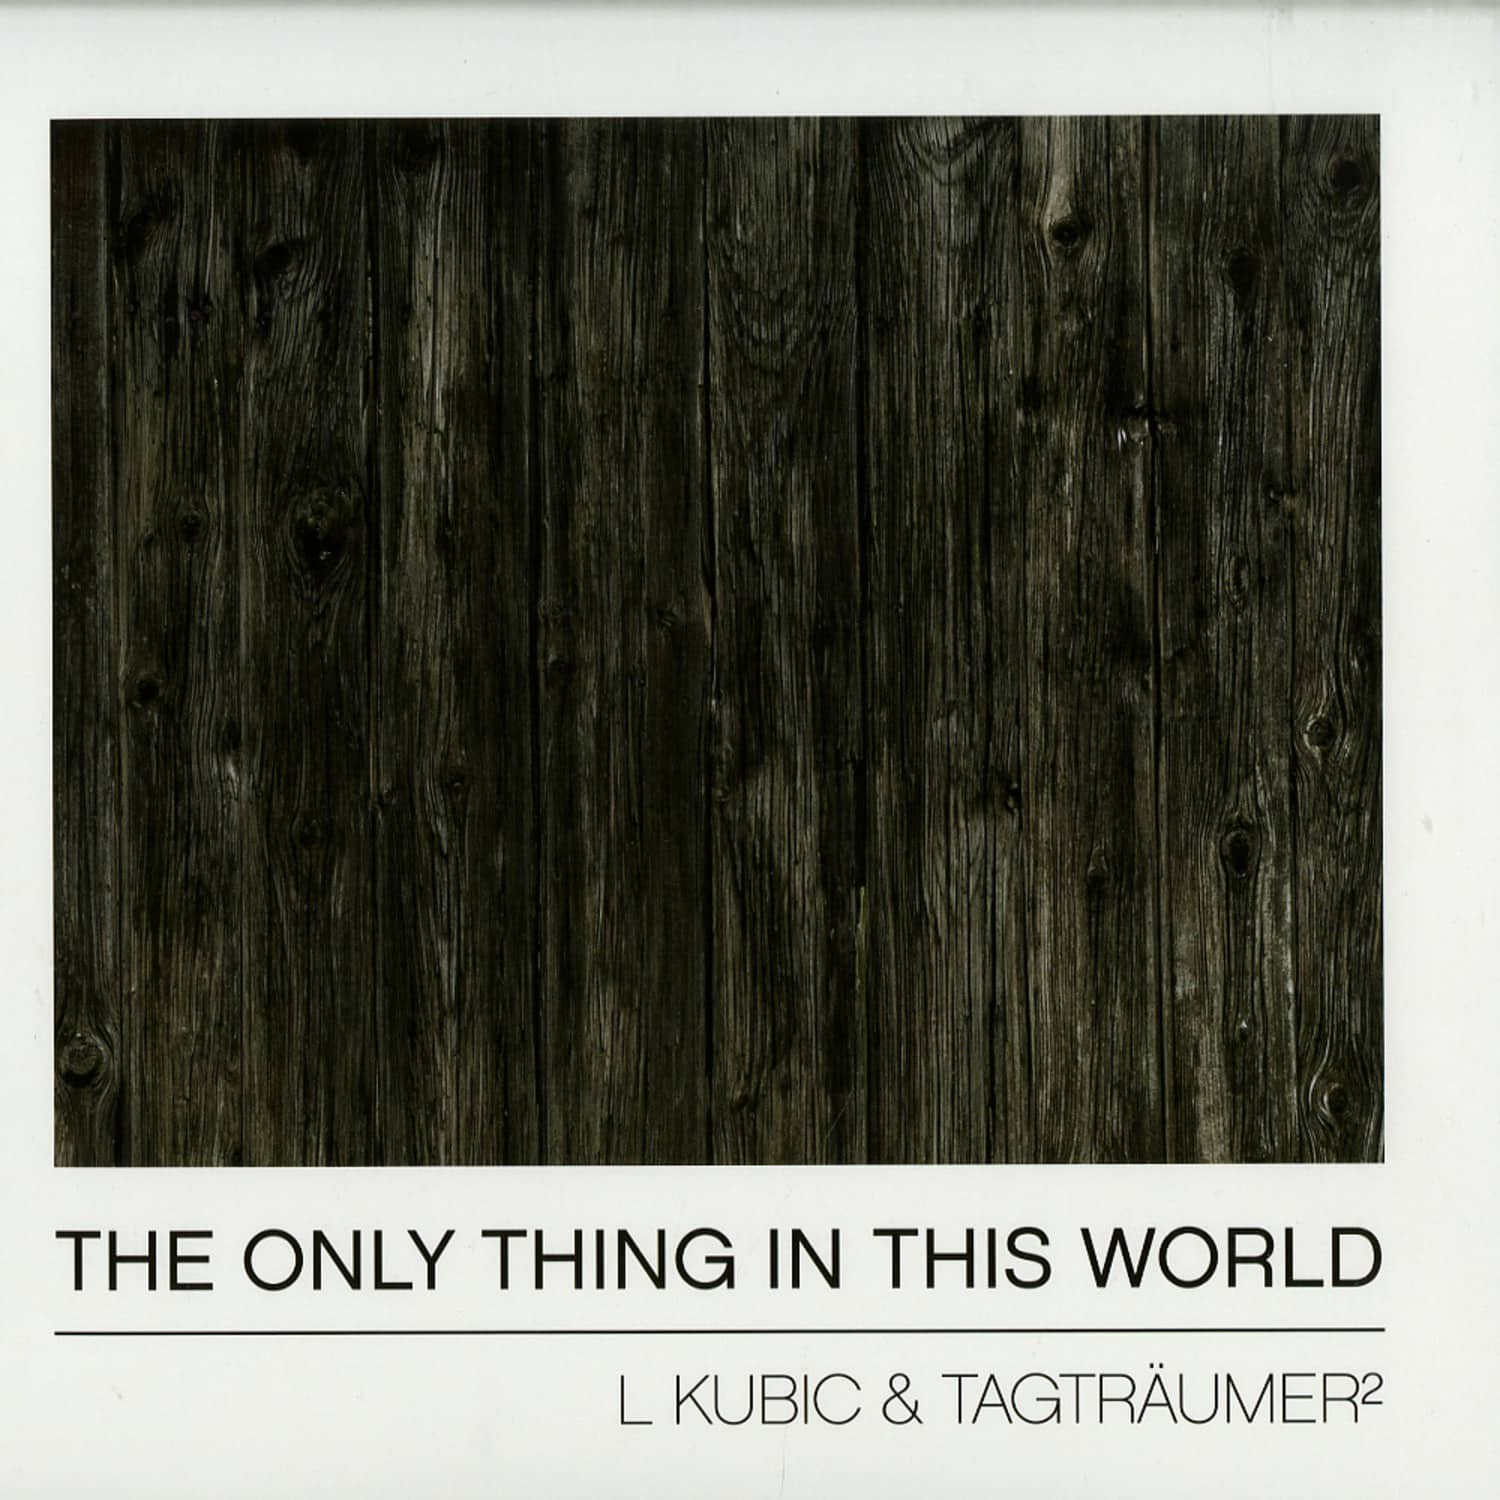 L Kubic & Tagtraeumer - THE ONLY THING IN THIS WORLD